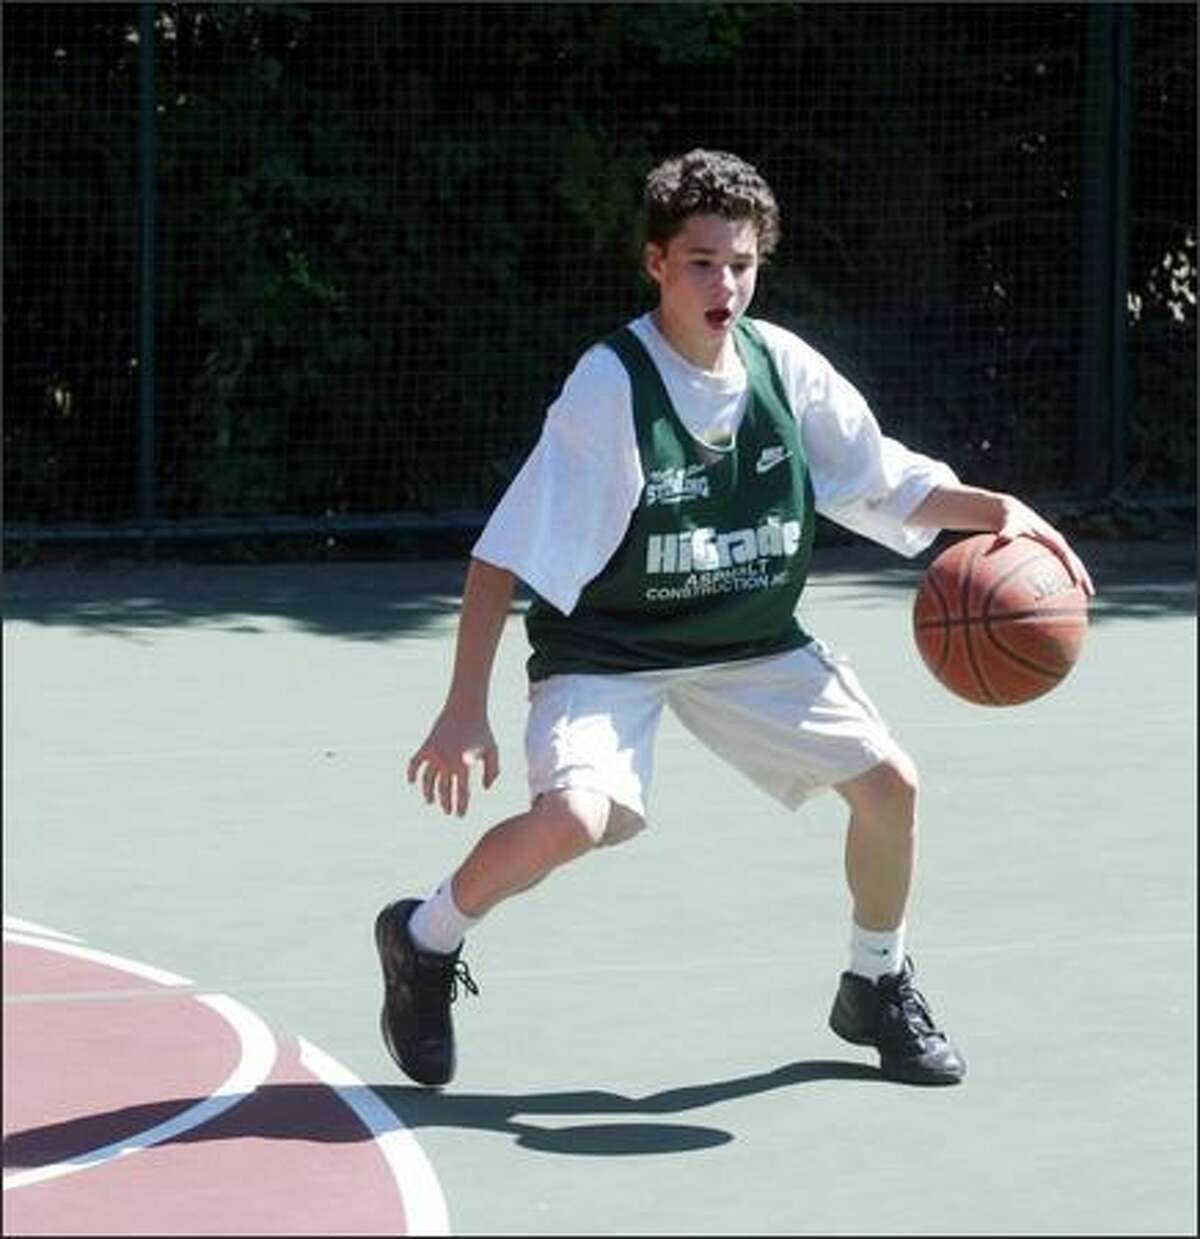 Anthony plays basketball on the court in his backyard.